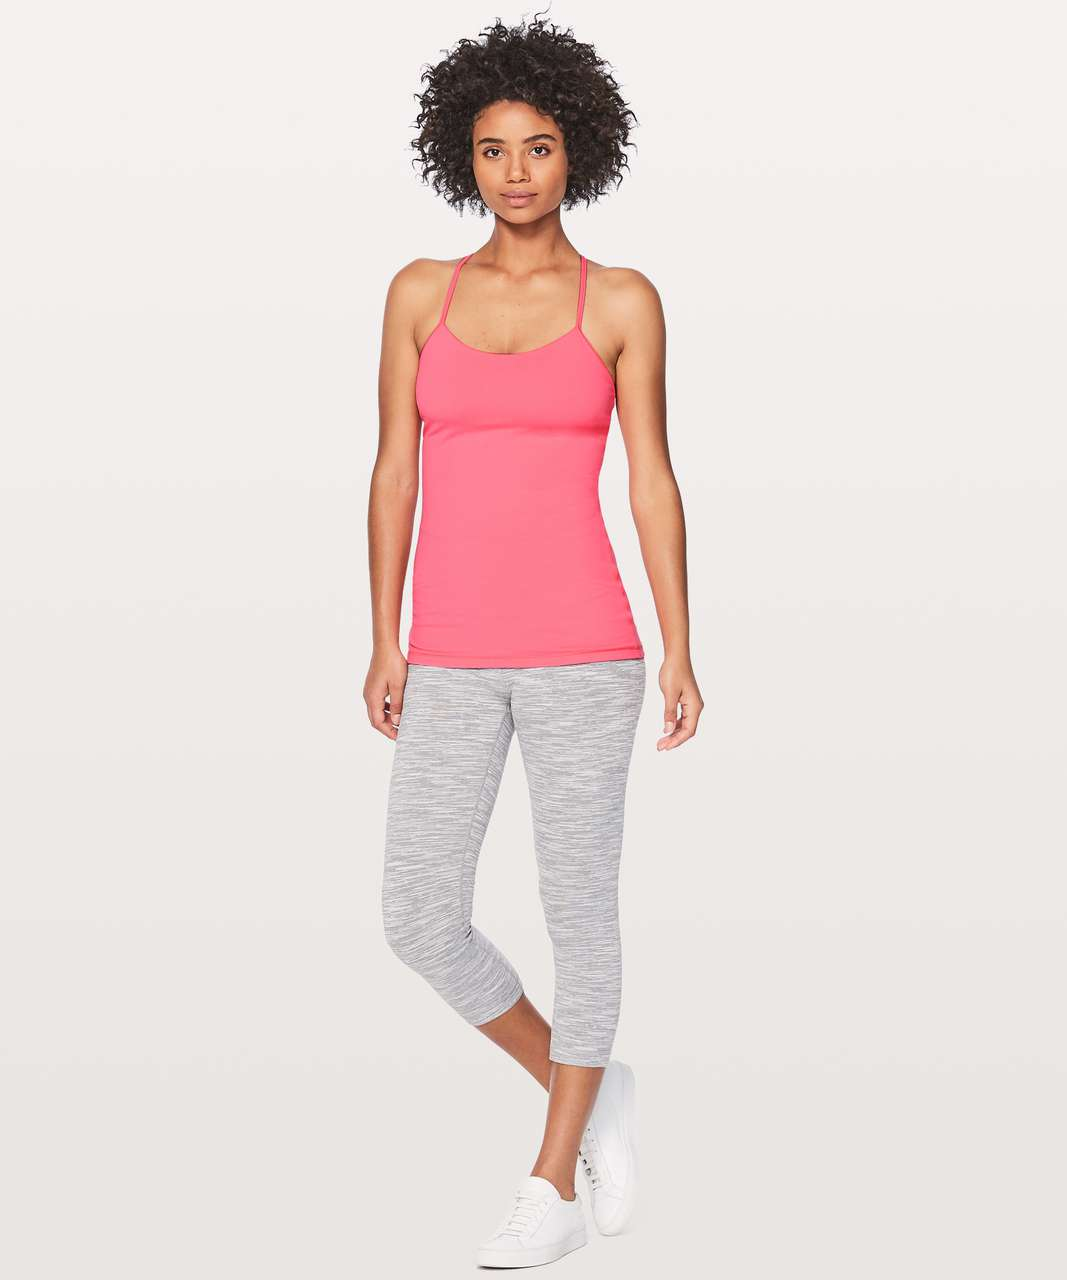 Lululemon Power Pose Tank - Flash Light Tone